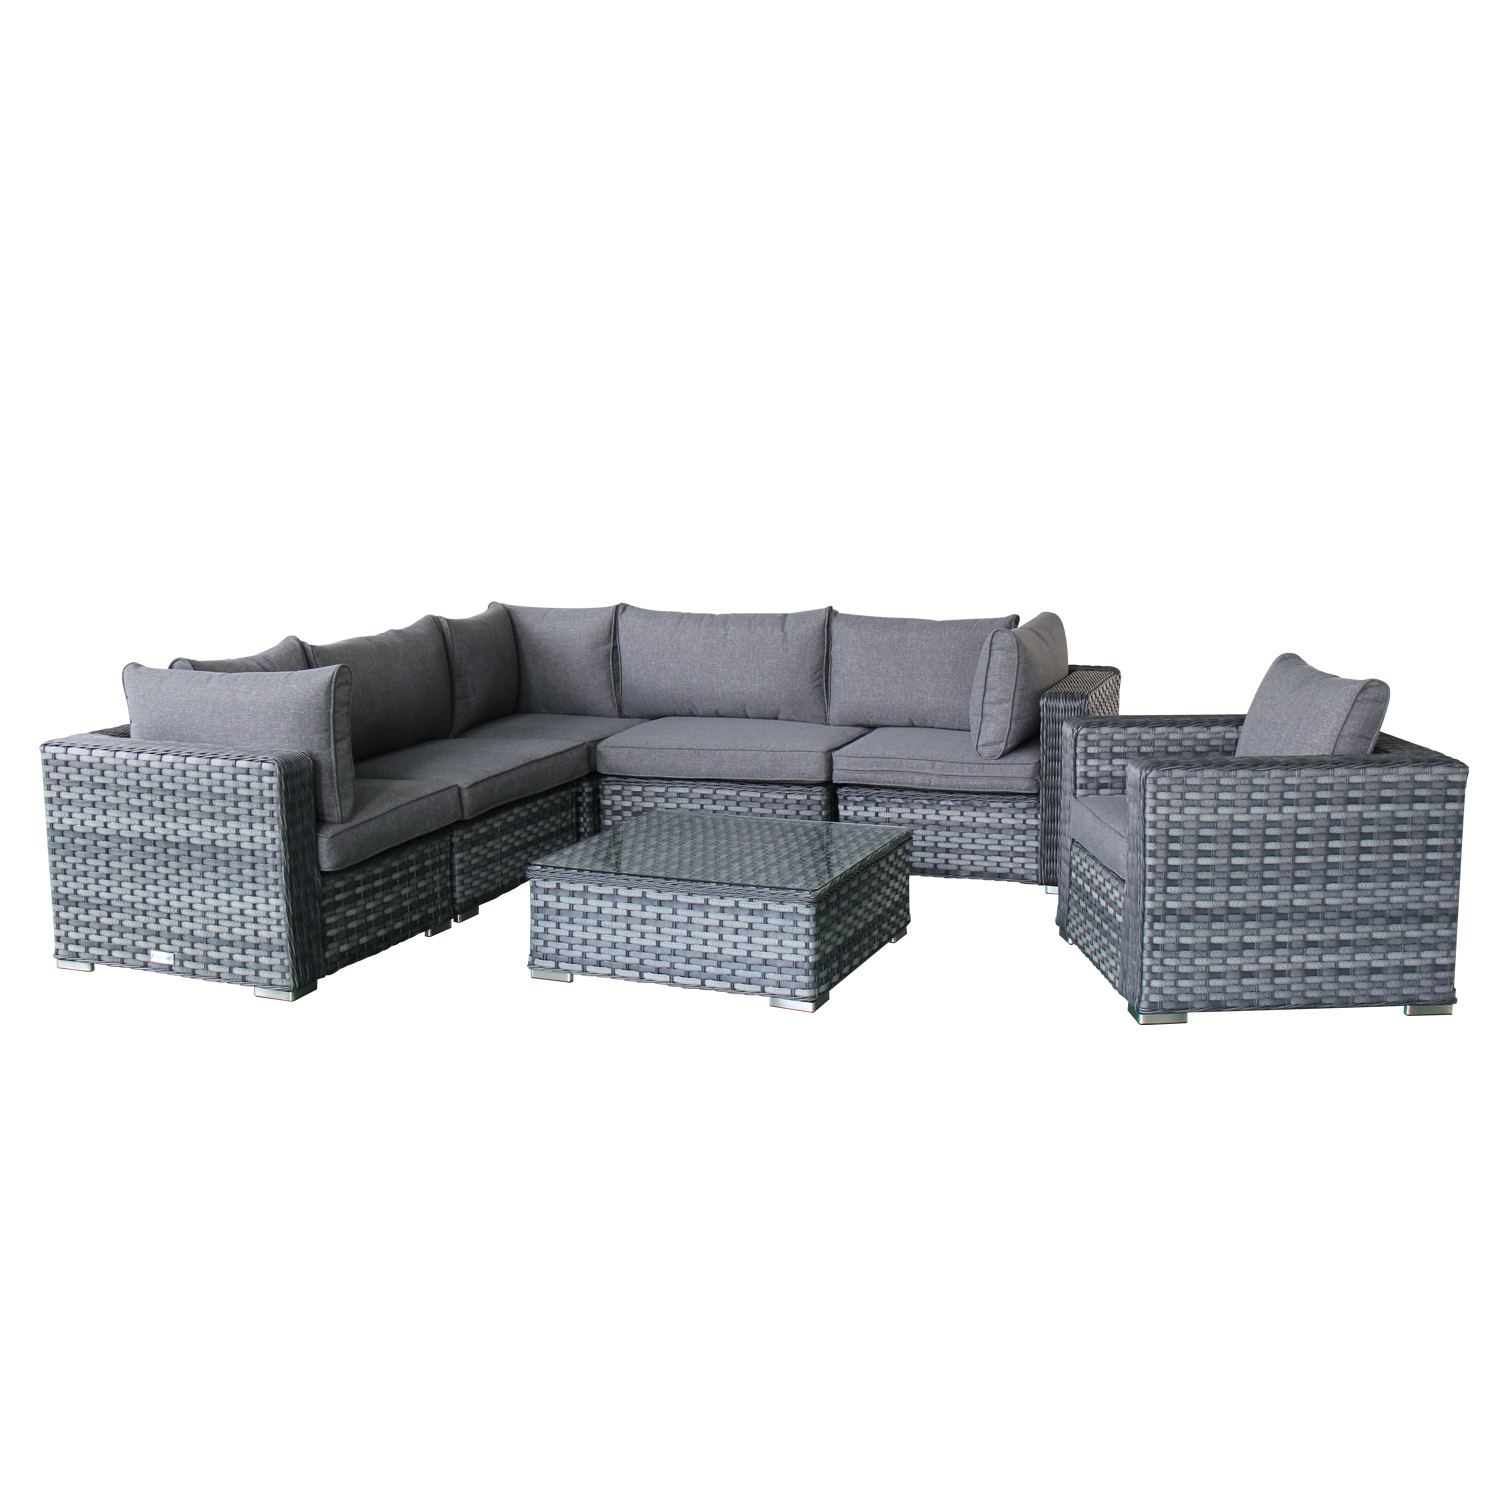 Magari Primavera I Sectional Sofa Set, 7 Pieces – Magari Home